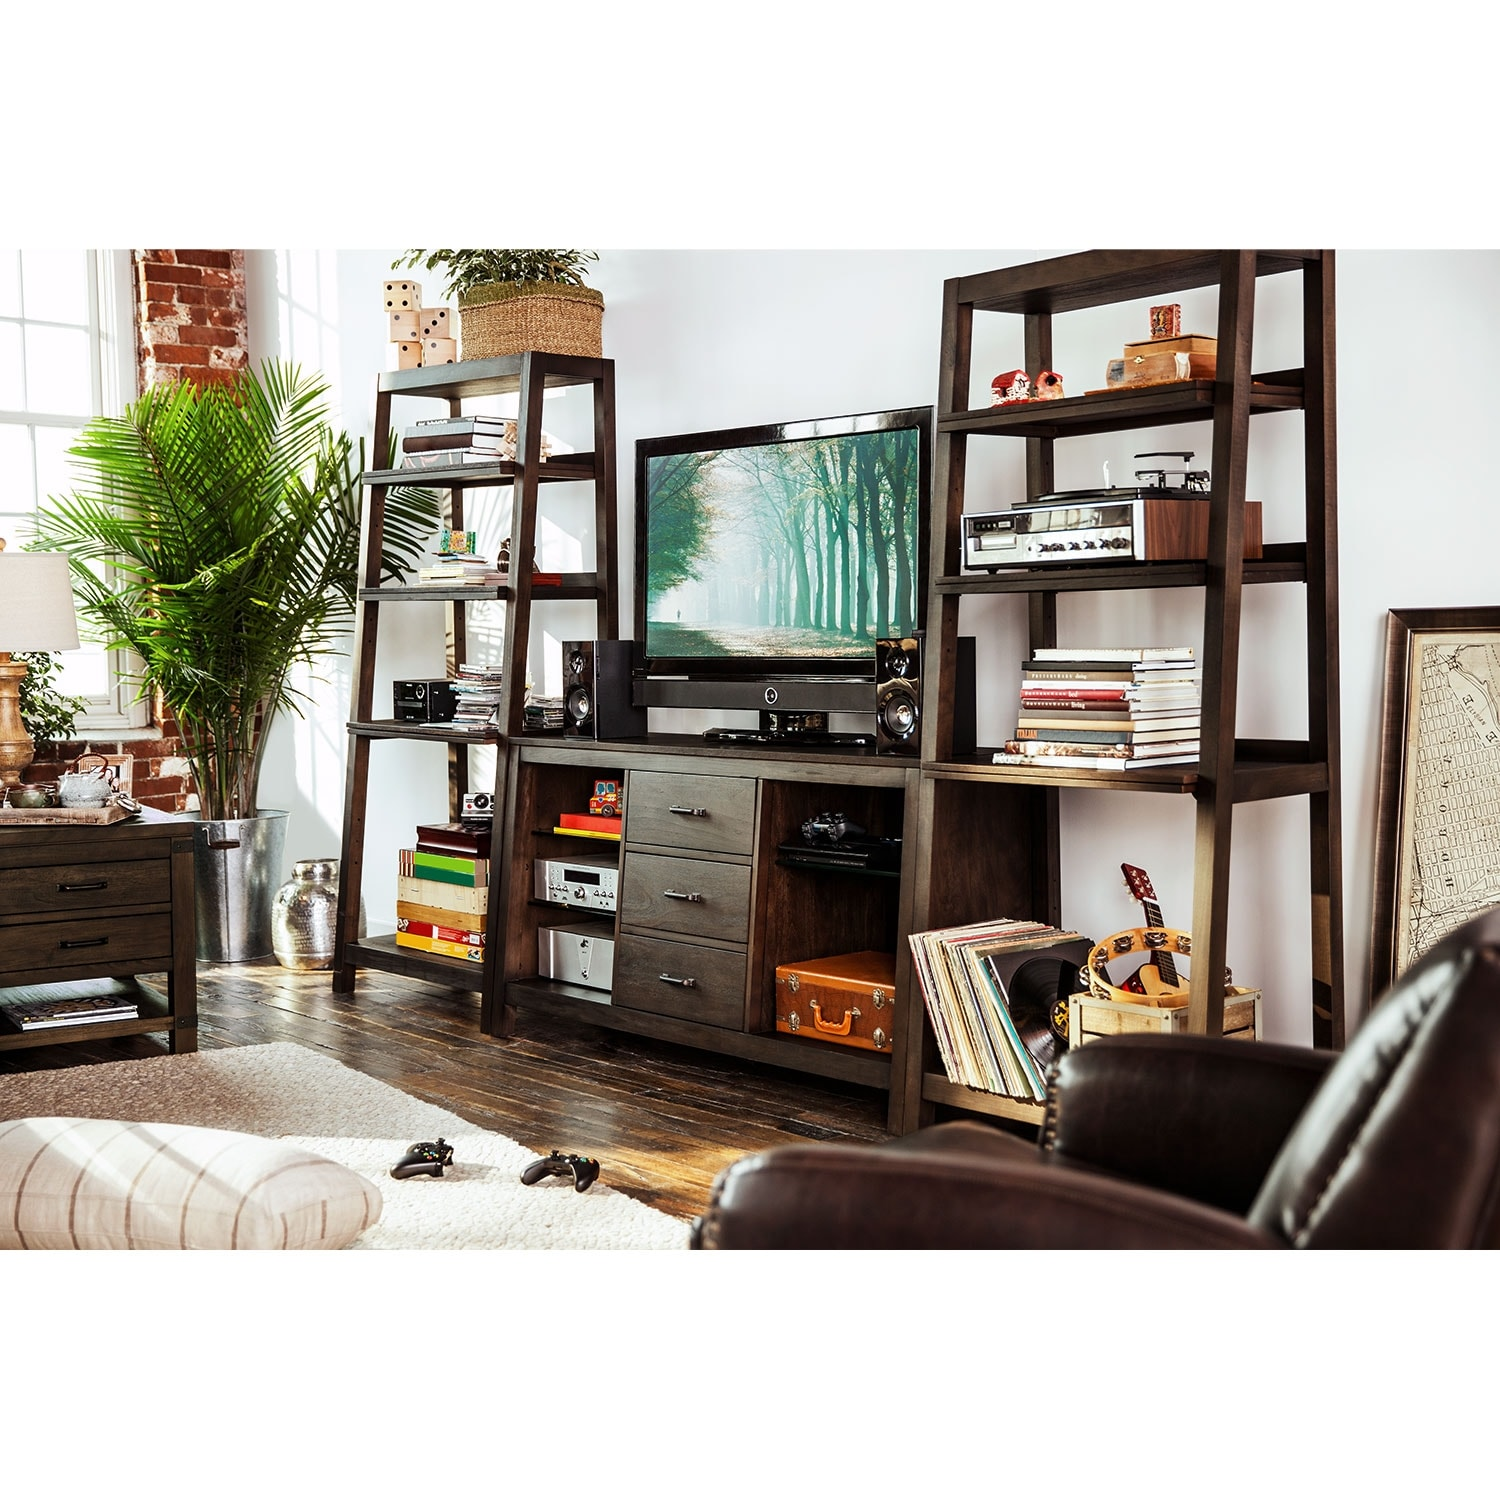 Greenpoint 3 Pc Entertainment Wall Unit